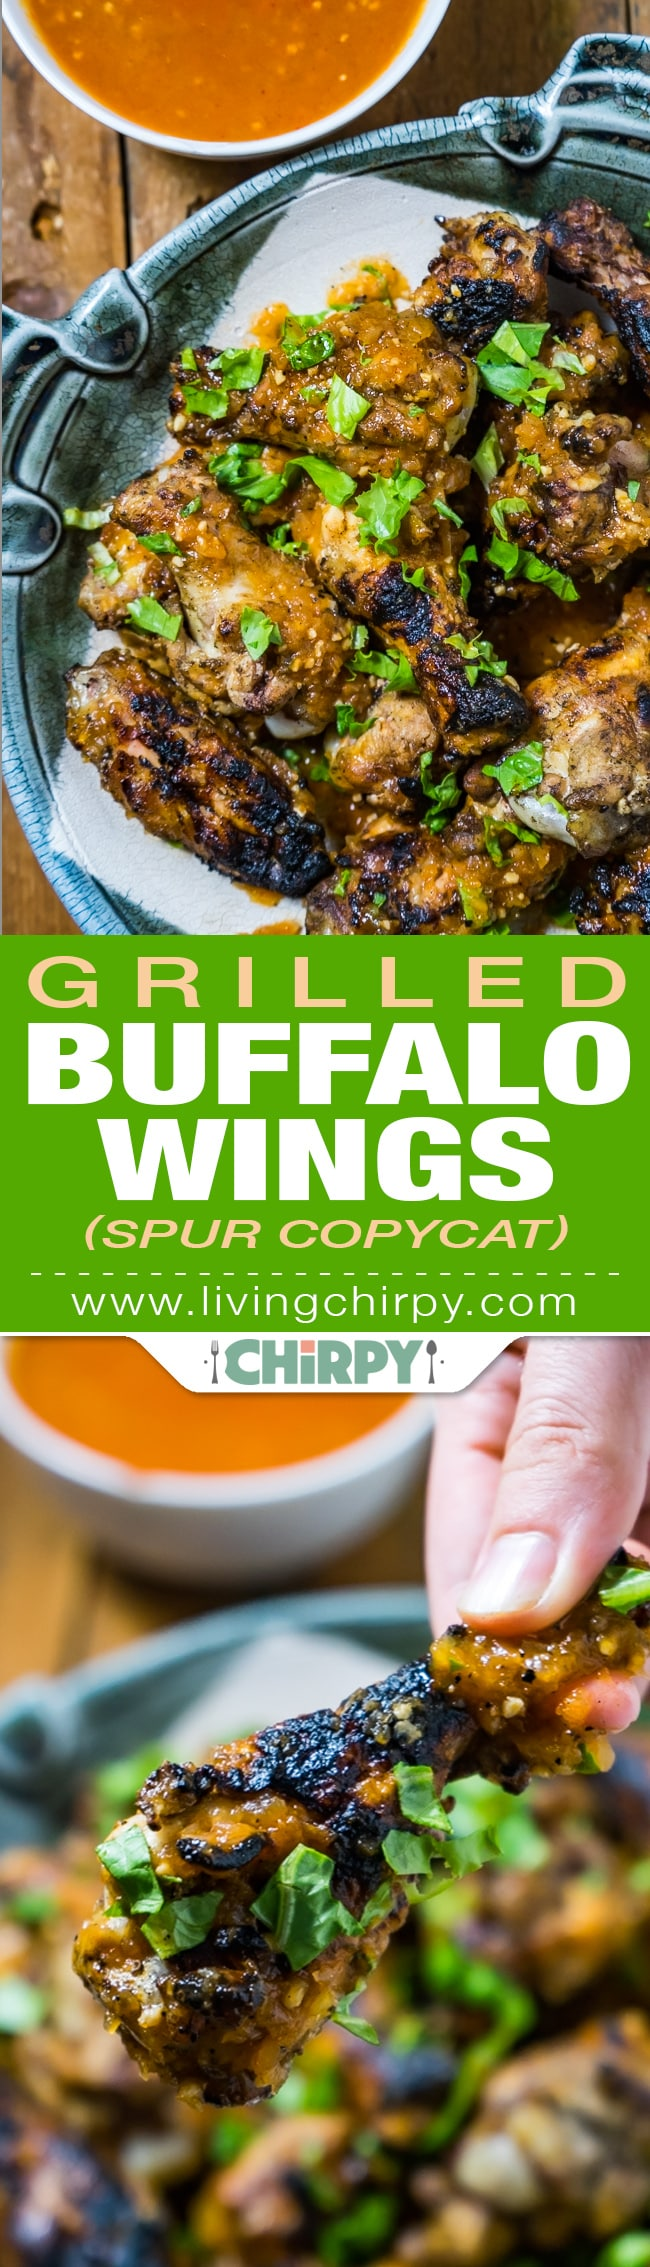 Spur Copycat Grilled Buffalo Wings